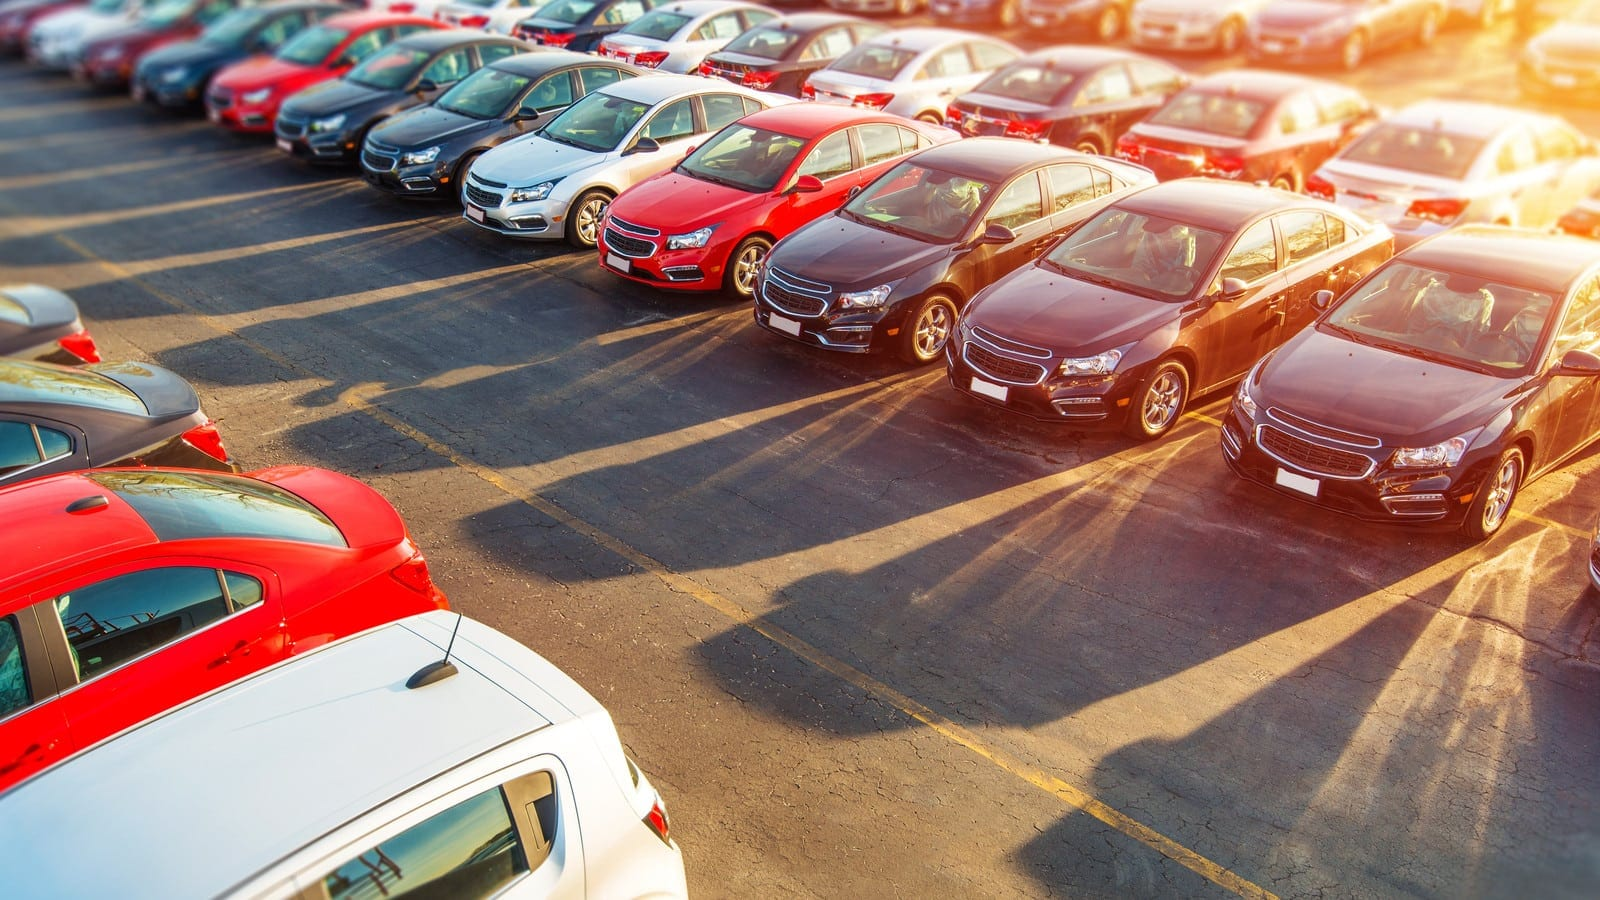 Aerial Photo Of A Large Car Lot Stock Photo